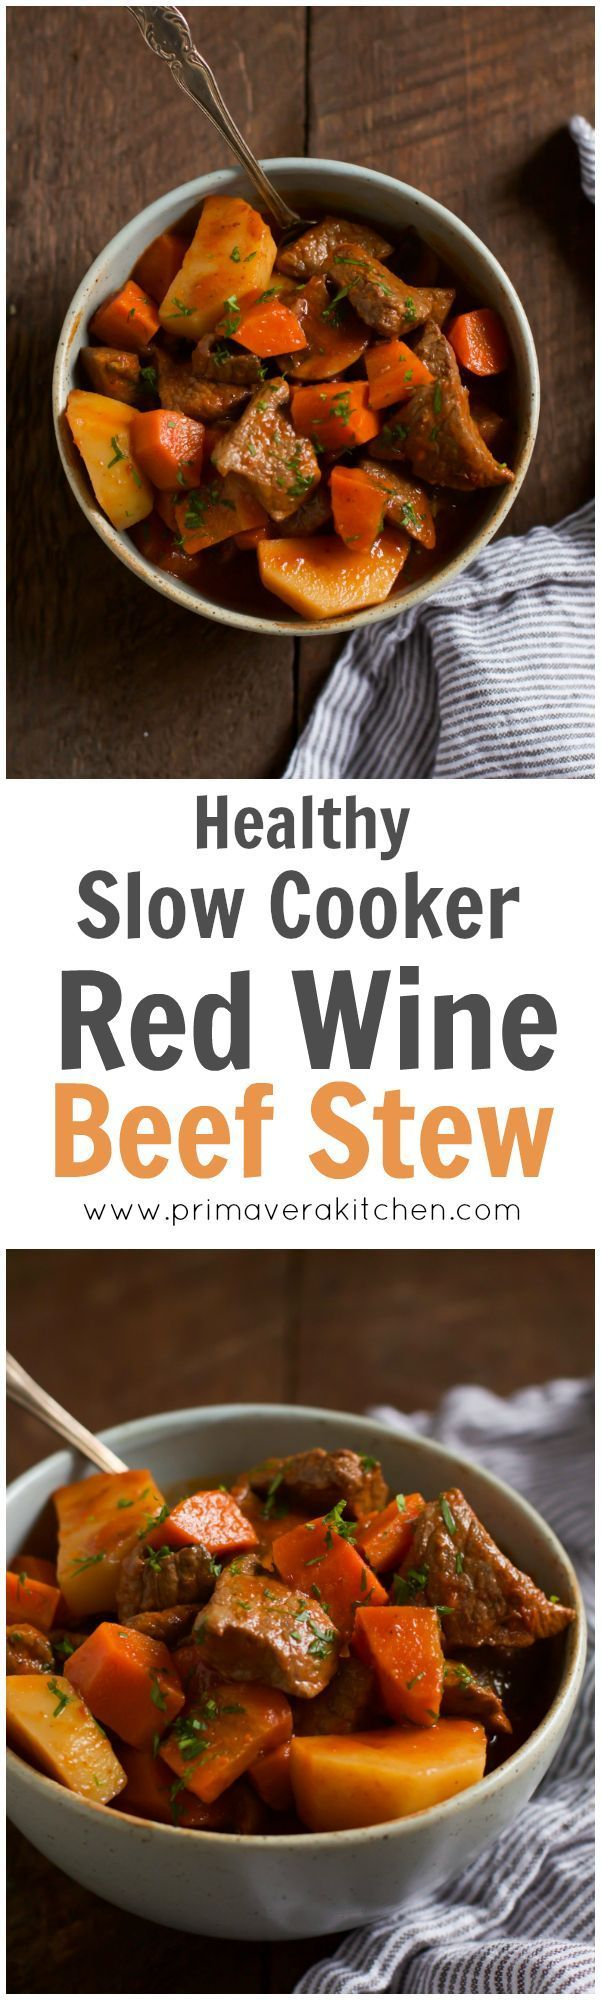 Slow Cooker Red Wine Beef Stew - This Slow Cooker Red Wine Beef Stew doesn't require any flour and loaded with potatoes, carrots and mushrooms. On top of that, it has a very delicious and rich sauce too enjoy!